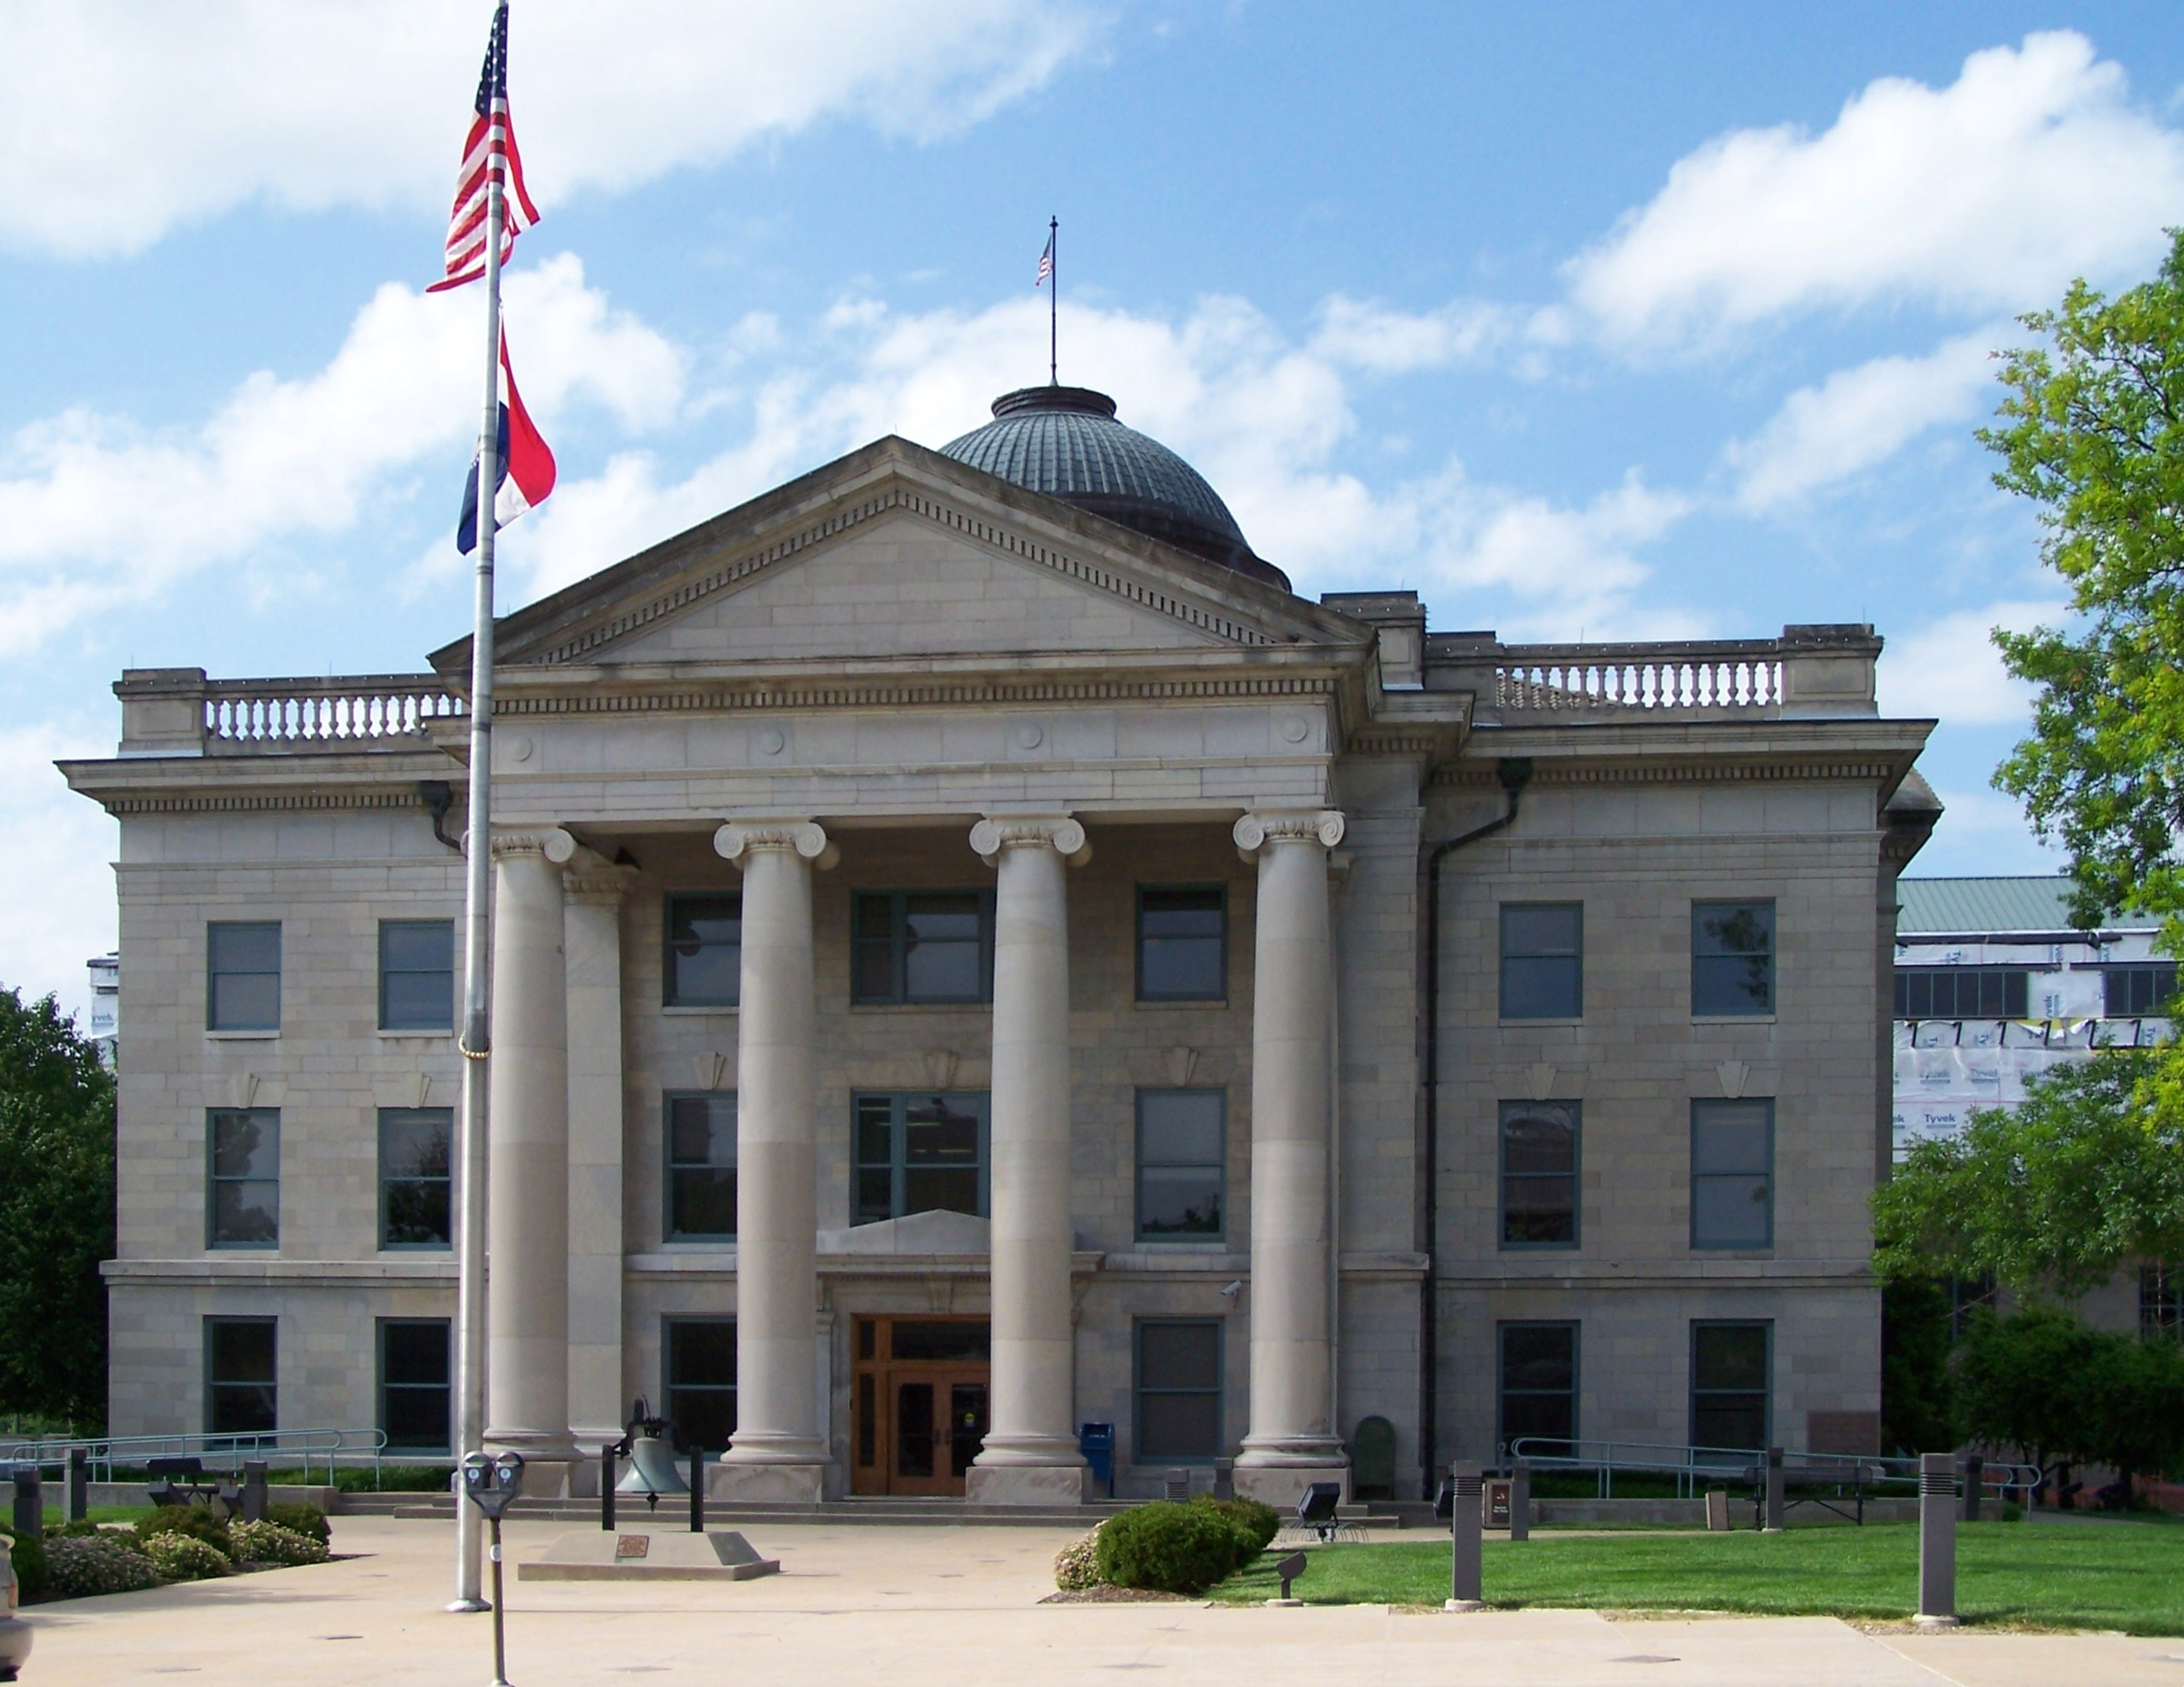 https://upload.wikimedia.org/wikipedia/commons/d/d0/Boone_County_Courthouse_in_Columbia%2C_Missouri.jpg